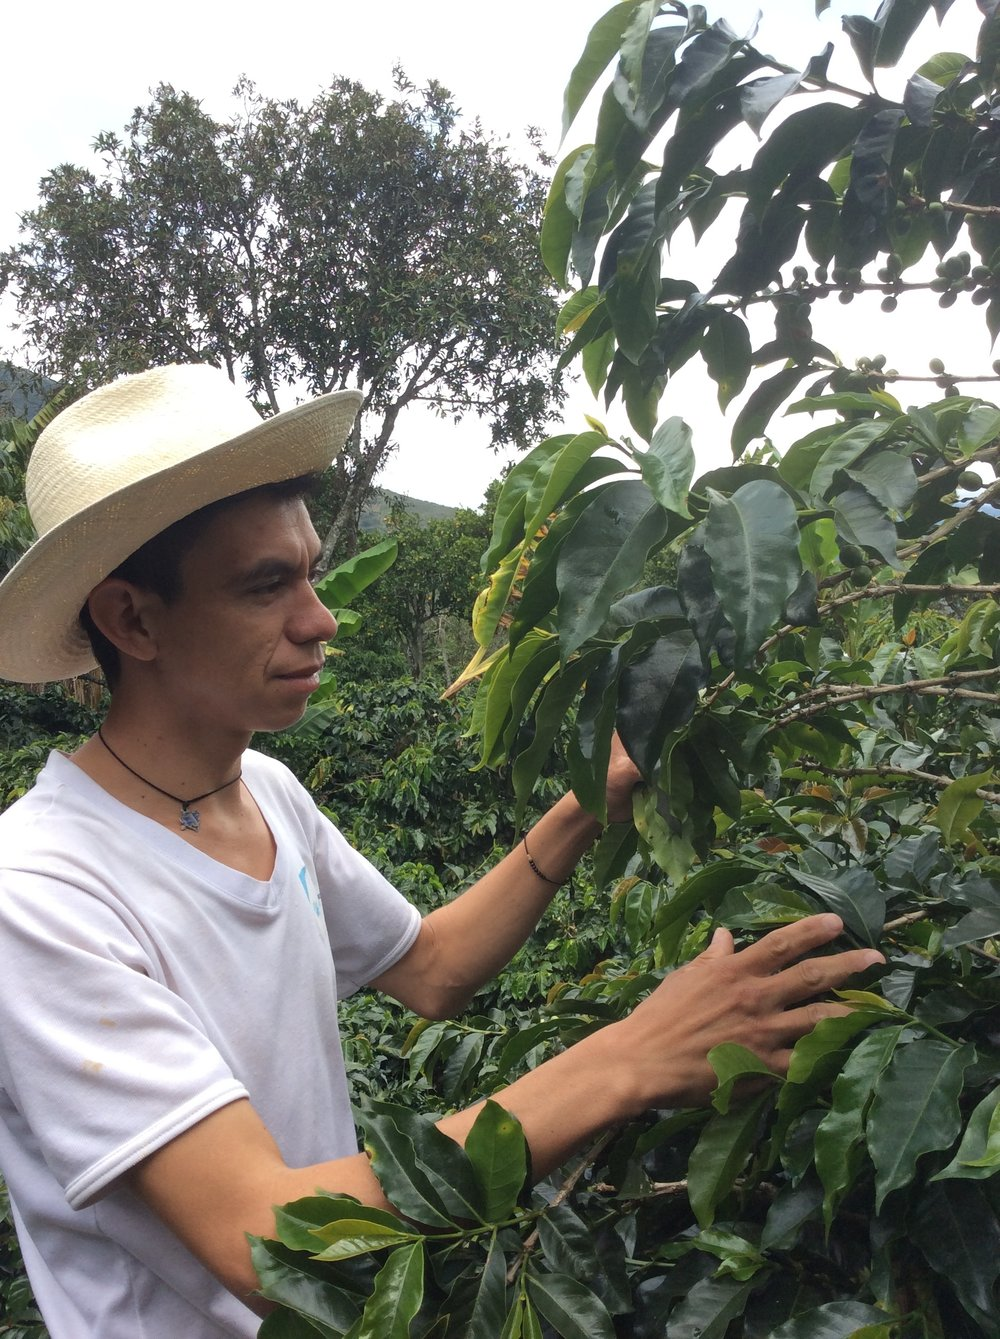 Second highest cupping results this year. A young man who, like almost all the inhabitants of Genoa, follows the tradition of his family in the cultivation of coffee. We're proud to have young producers who believe in coffee in our team.